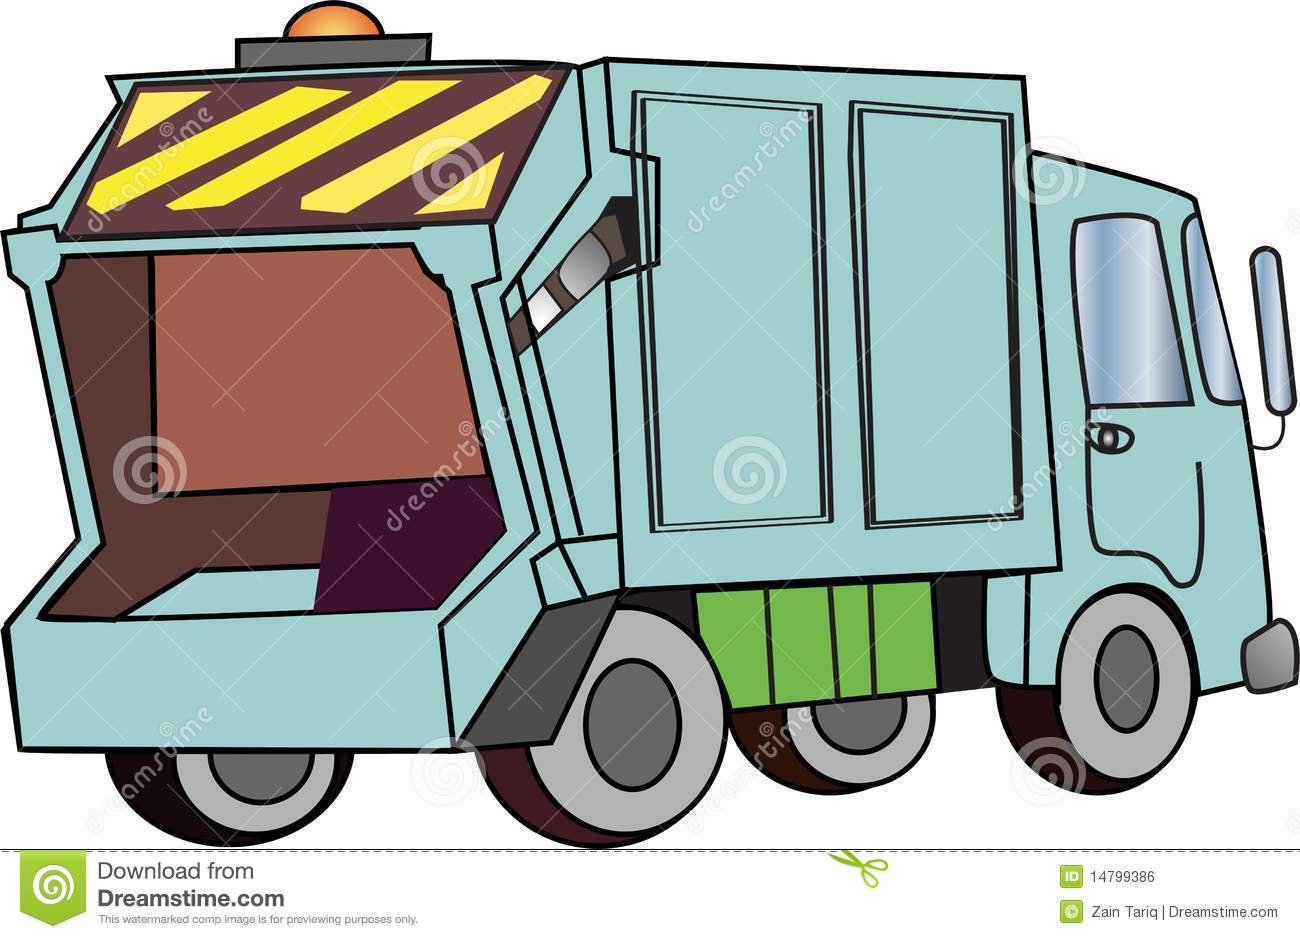 Free Refuse Truck Cliparts, Download Free Clip Art, Free Clip Art on.